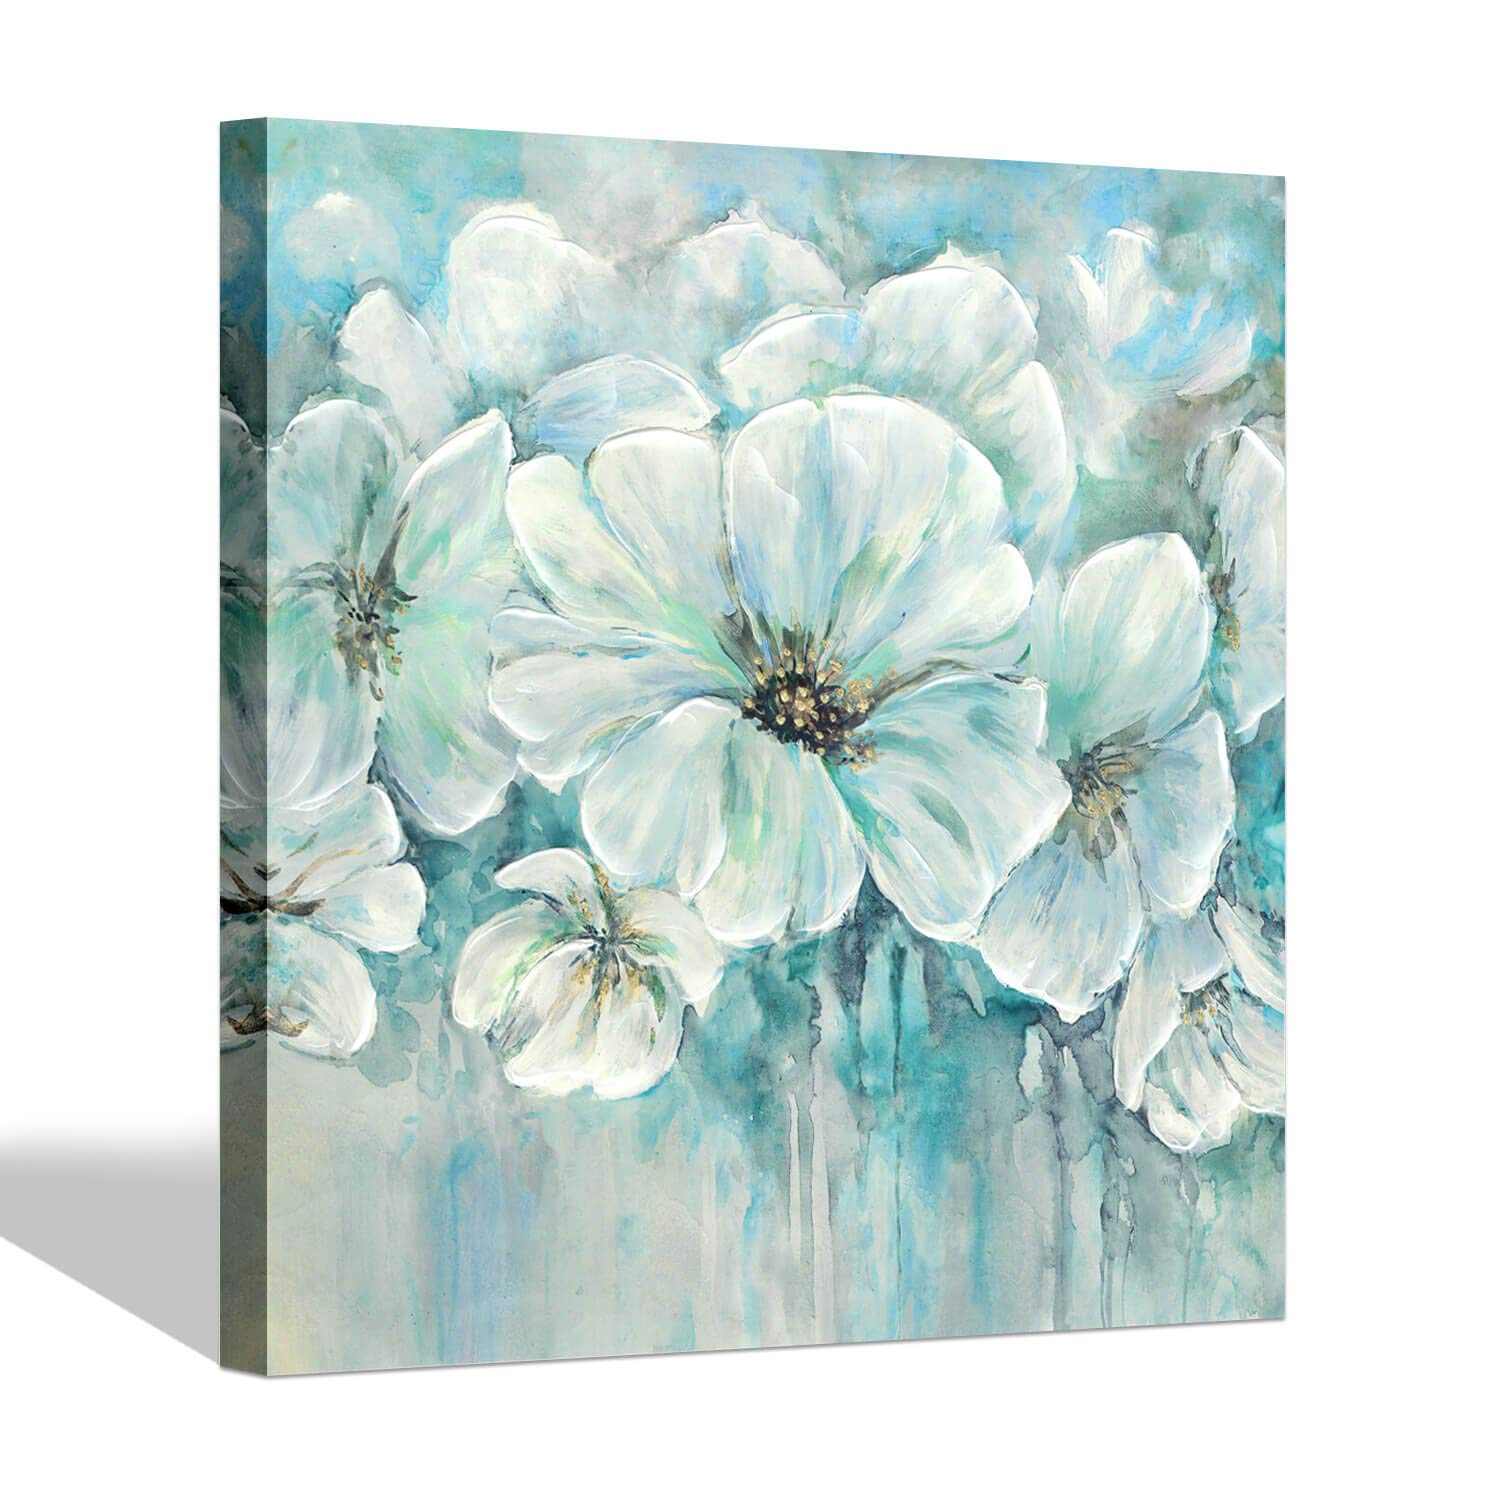 Floral Blooming Canvas Prints Wall Art Succulents Flowers Painting Picture Artwork 16 x 12 x 3 Panels